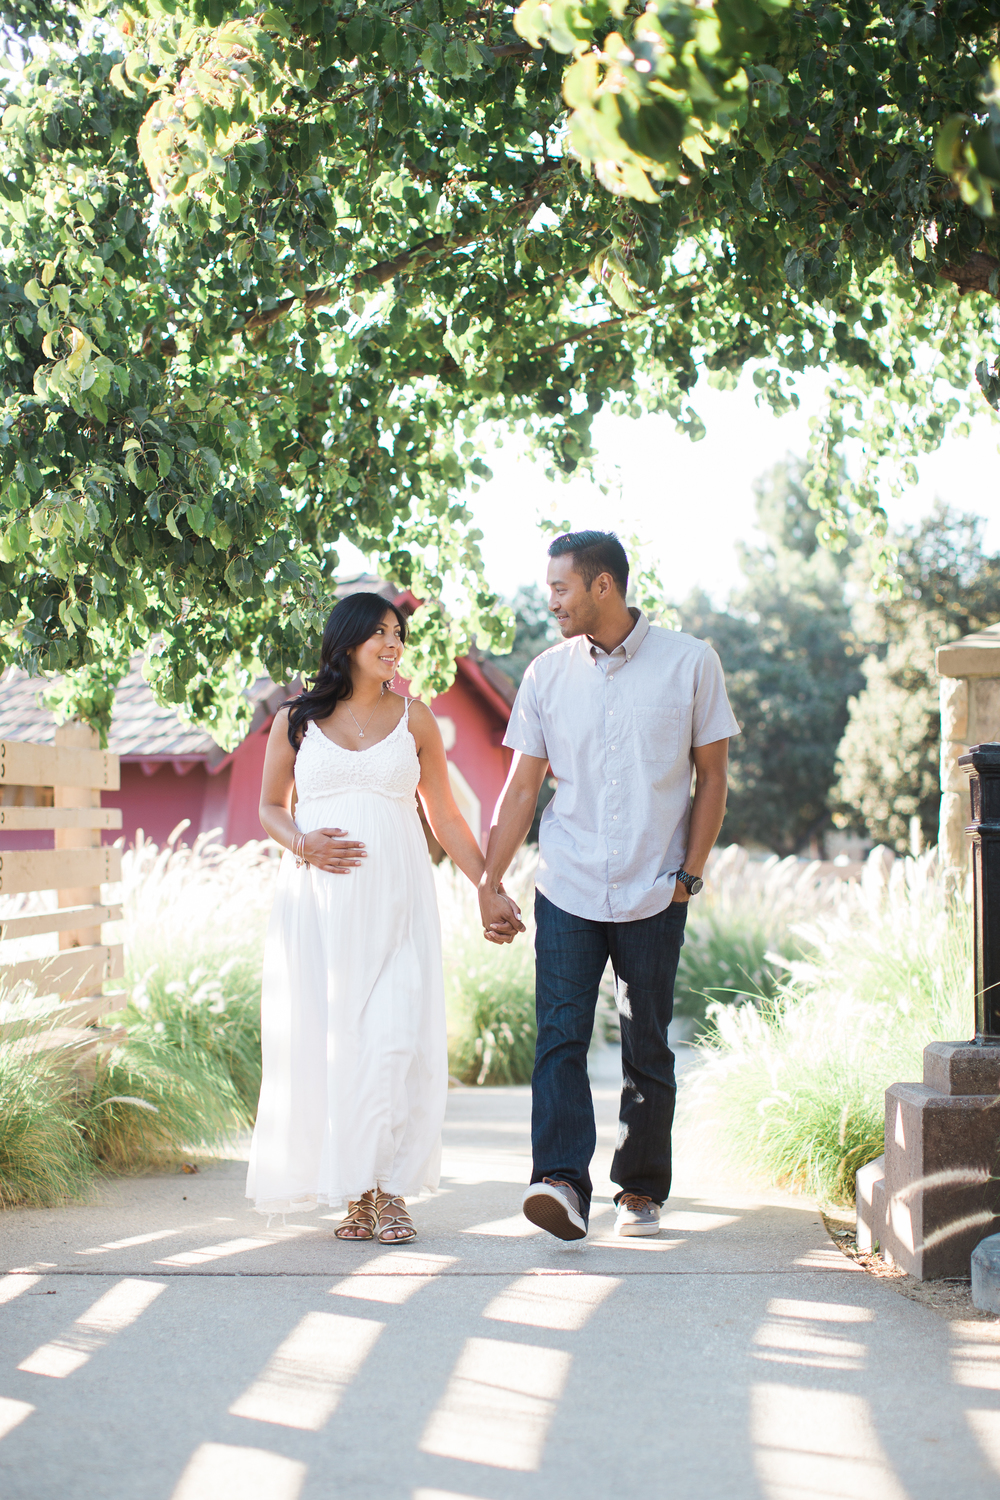 Marcella_Maternity_Cerritos_BrandonJFerlin_Photography-28.jpg